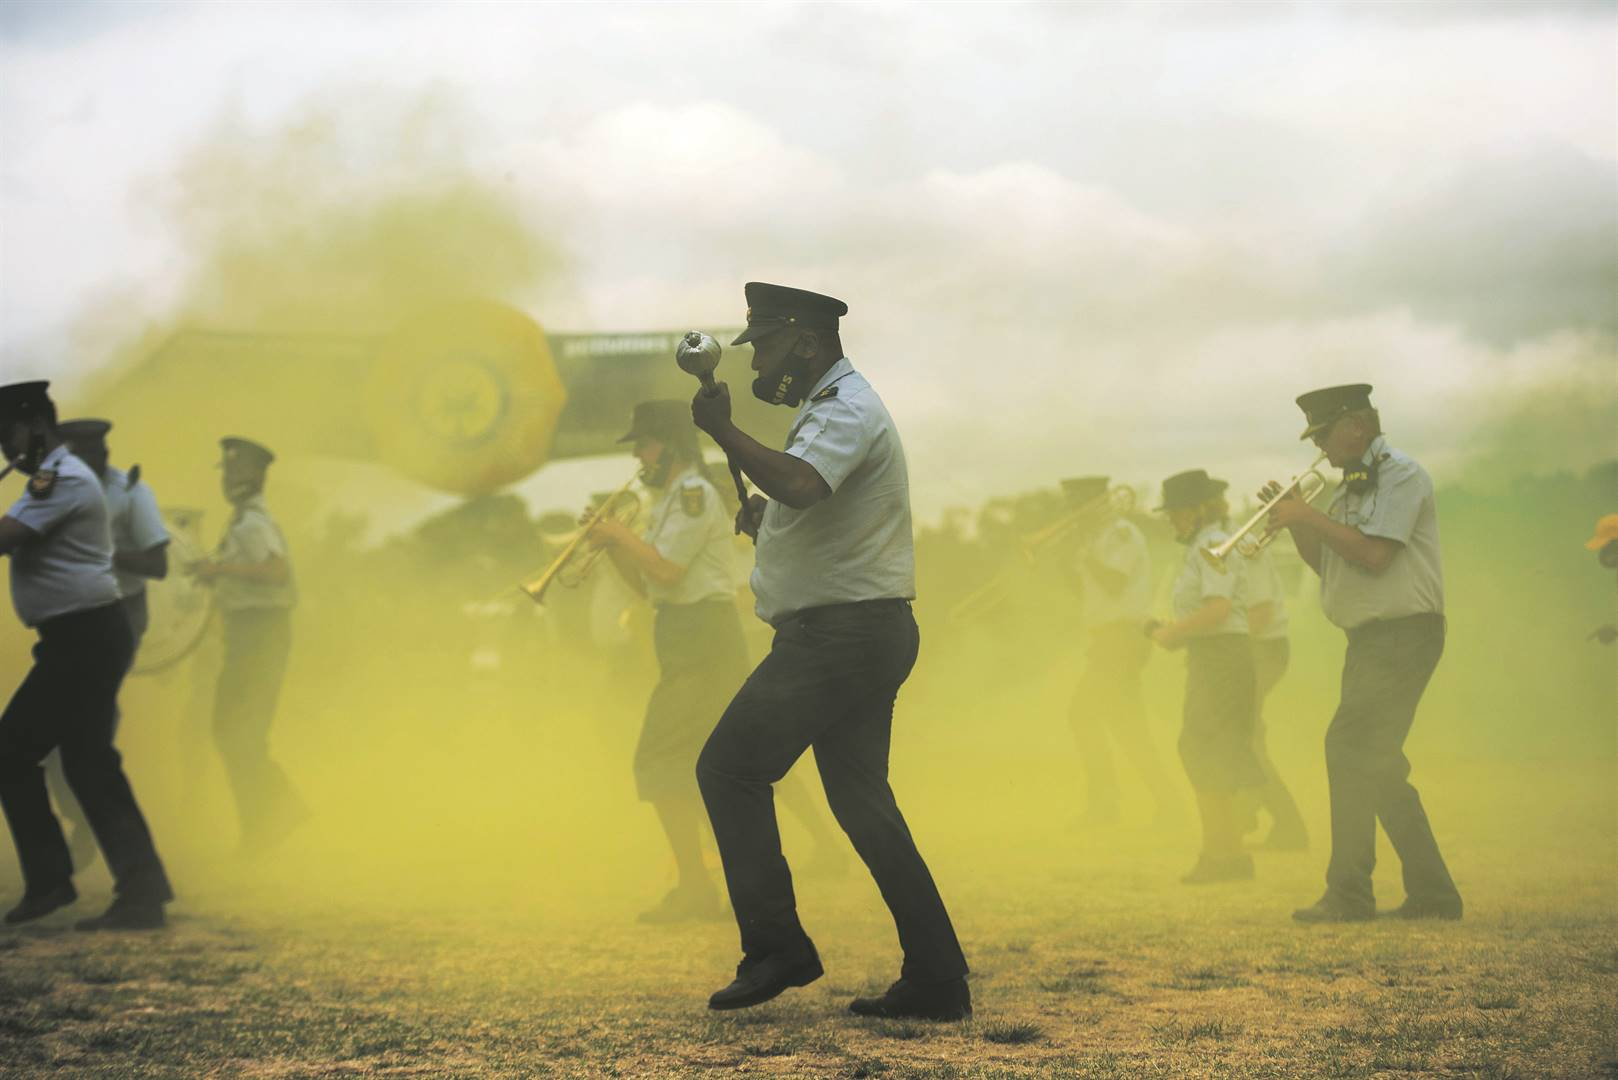 Members of the SA Police Service heeded the president's call with a performance for the #JerusalemaDanceChallenge during the annual National Police Prayer Day at the SAPS Academy in Pretoria last week. The hit song Jerusalema continues to trend globally. Picture: Alet Pretorius / Gallo Images